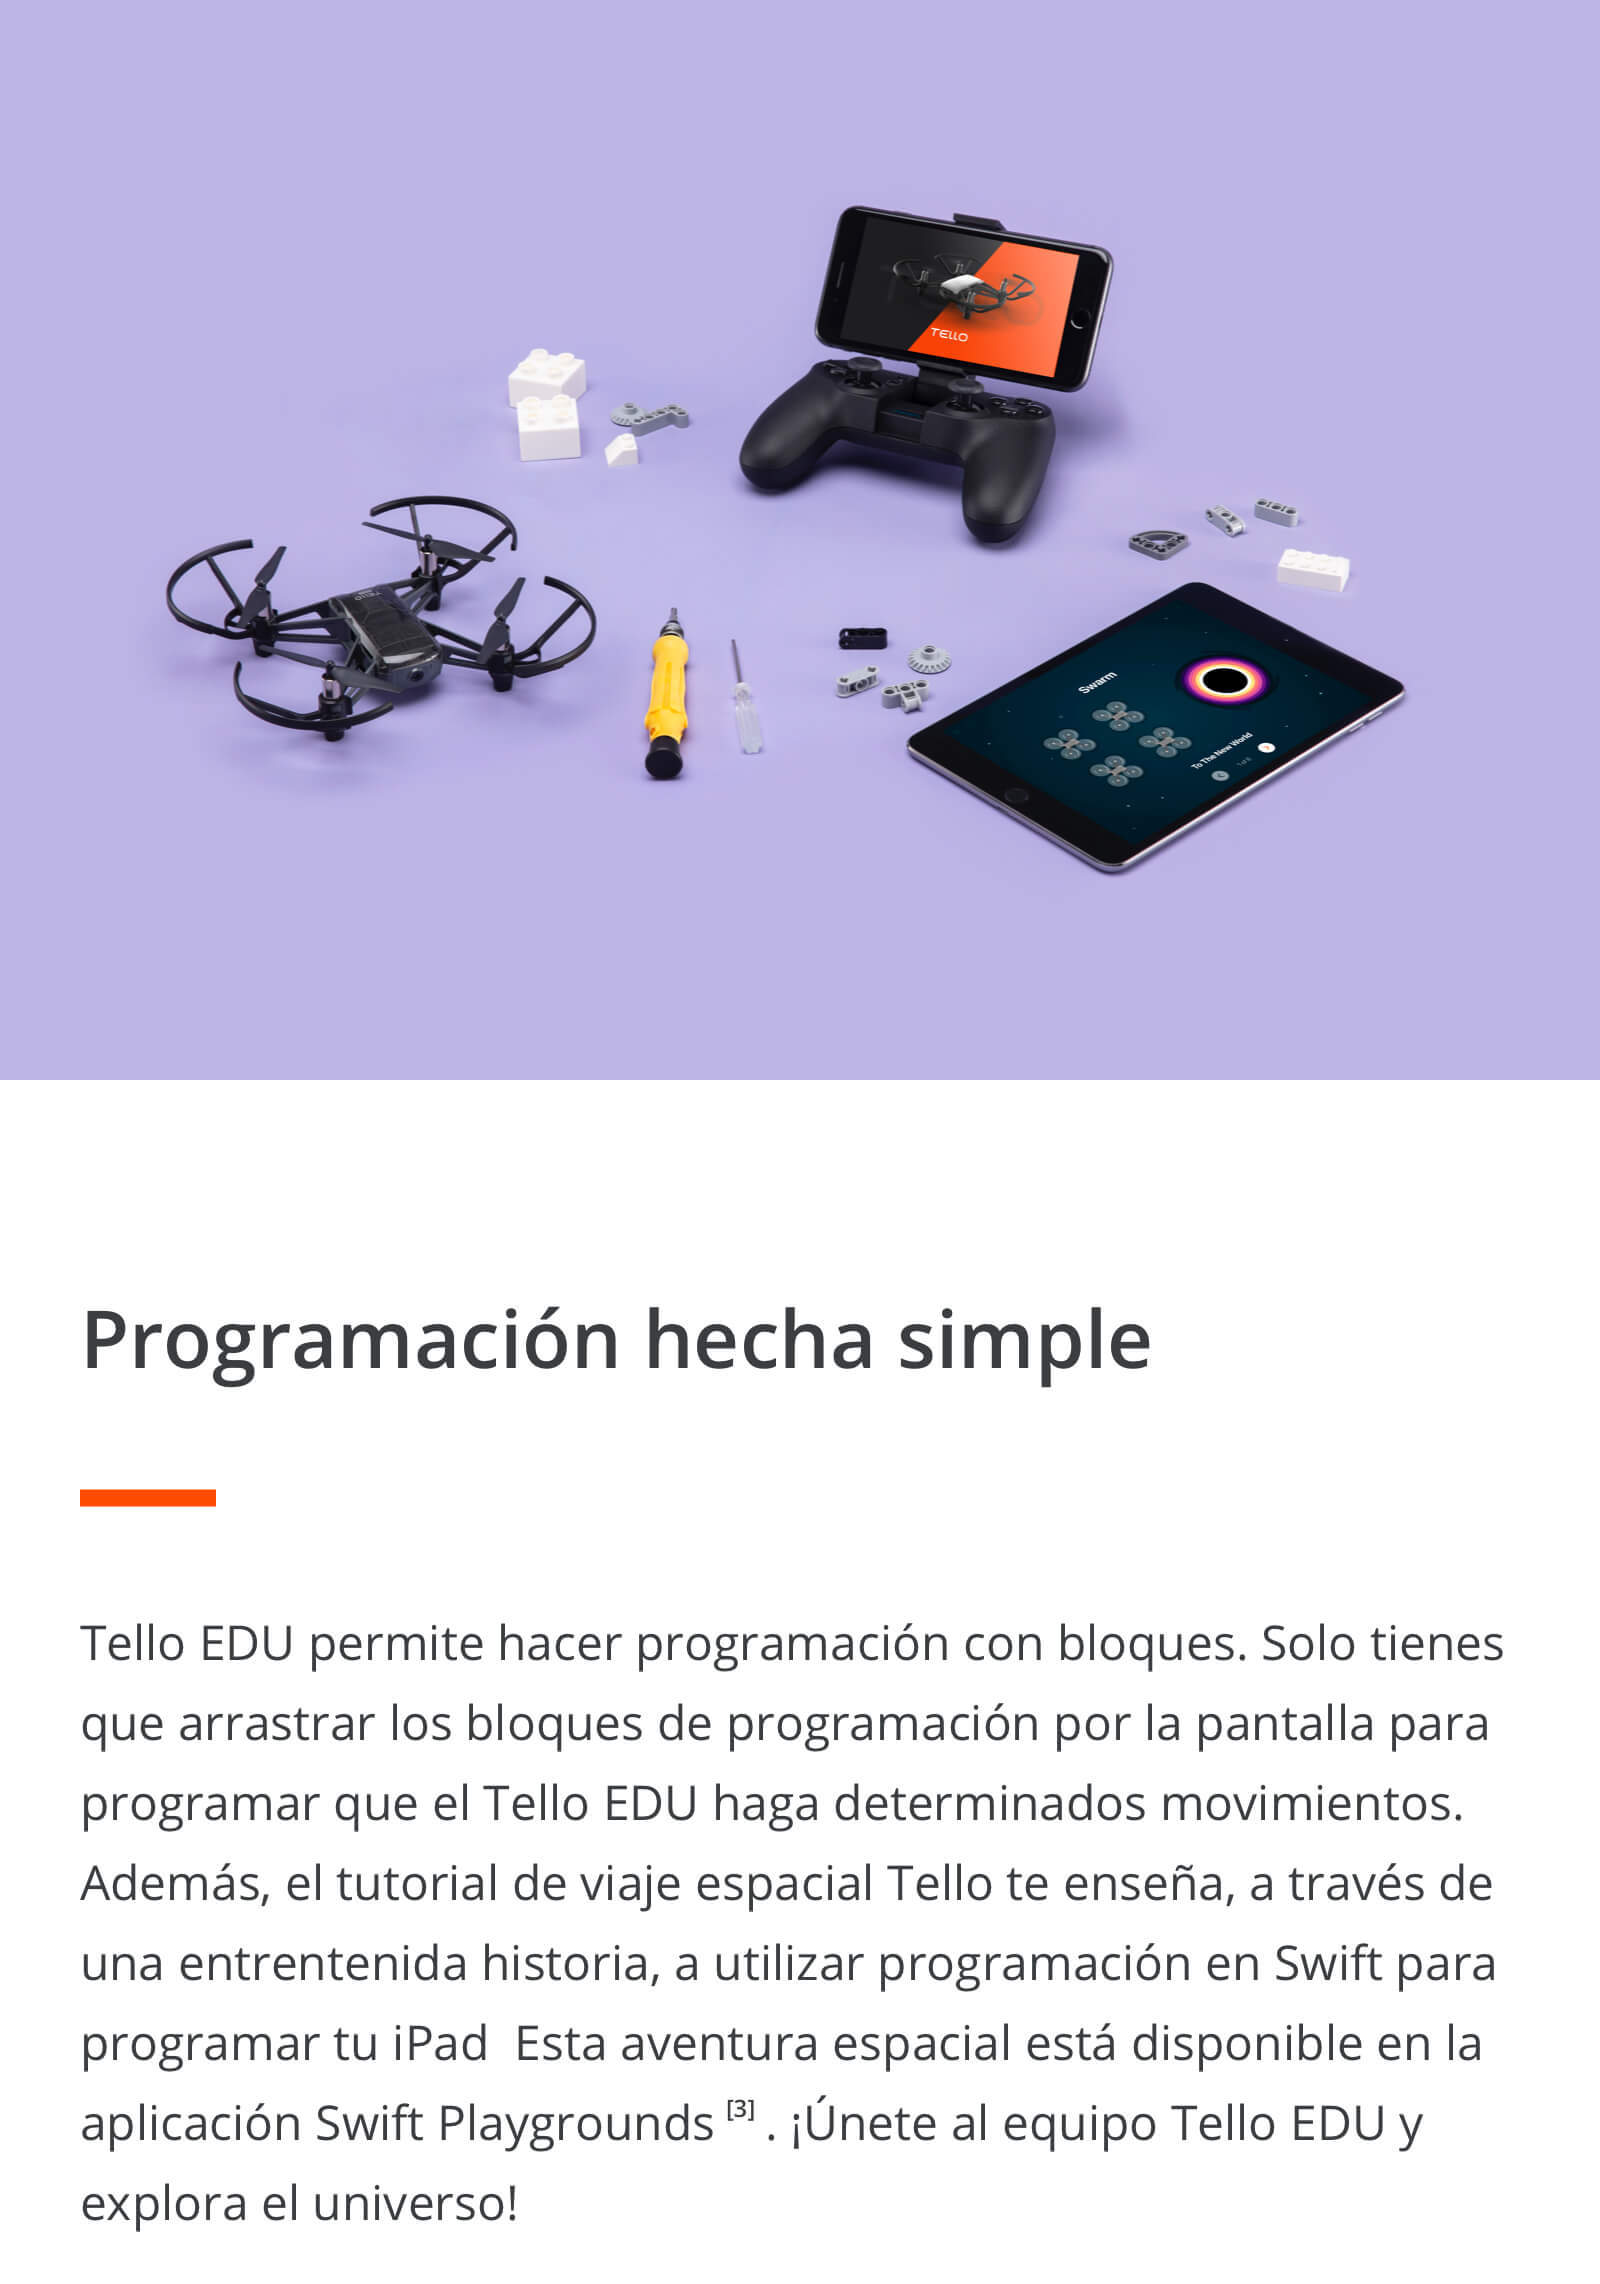 tello_edu_stockrc5